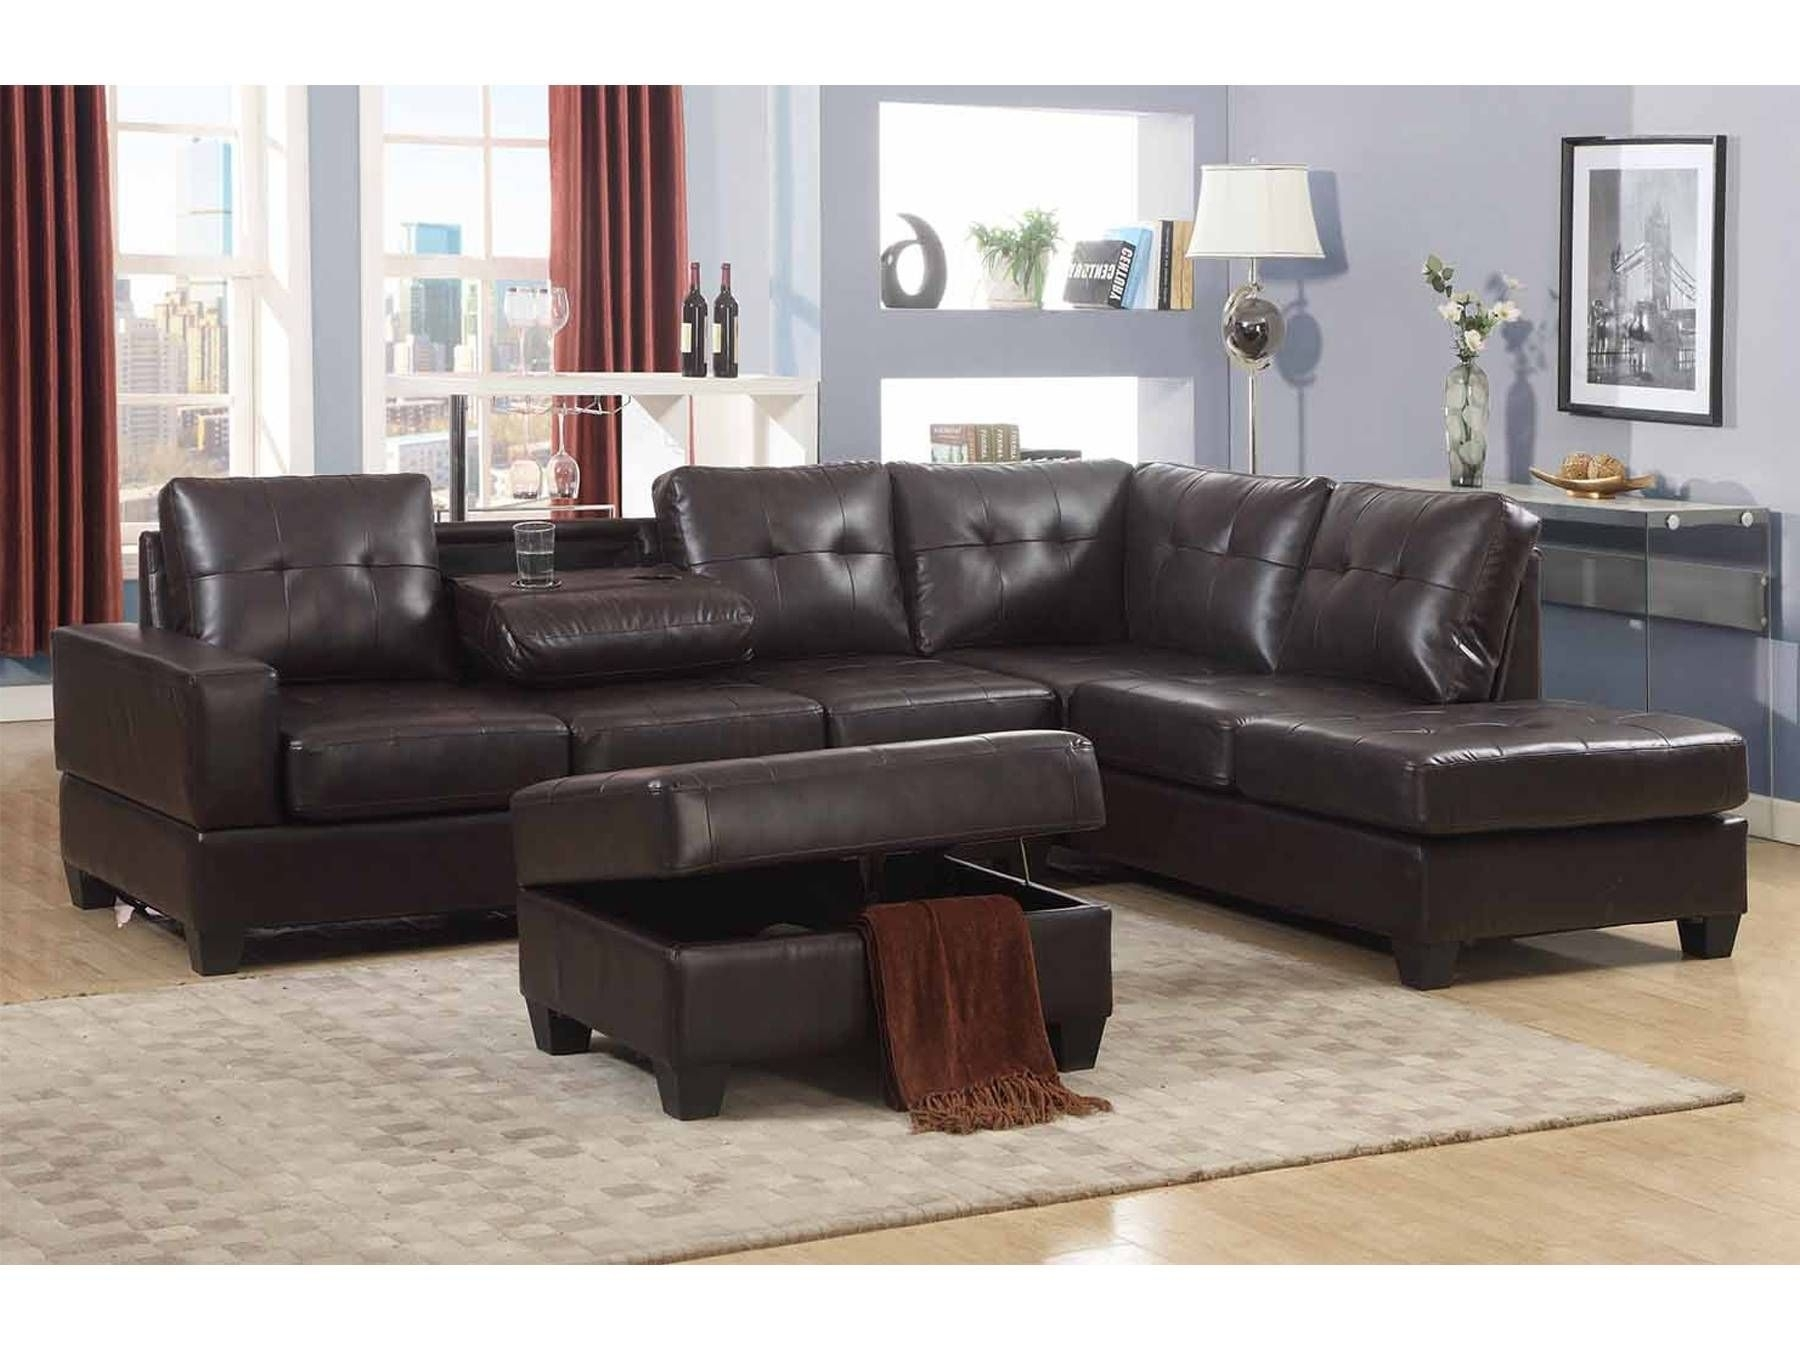 100+ Small Spaces Configurable Sectional Sofa - Best Interior Wall intended for Nico Grey Sectionals With Left Facing Storage Chaise